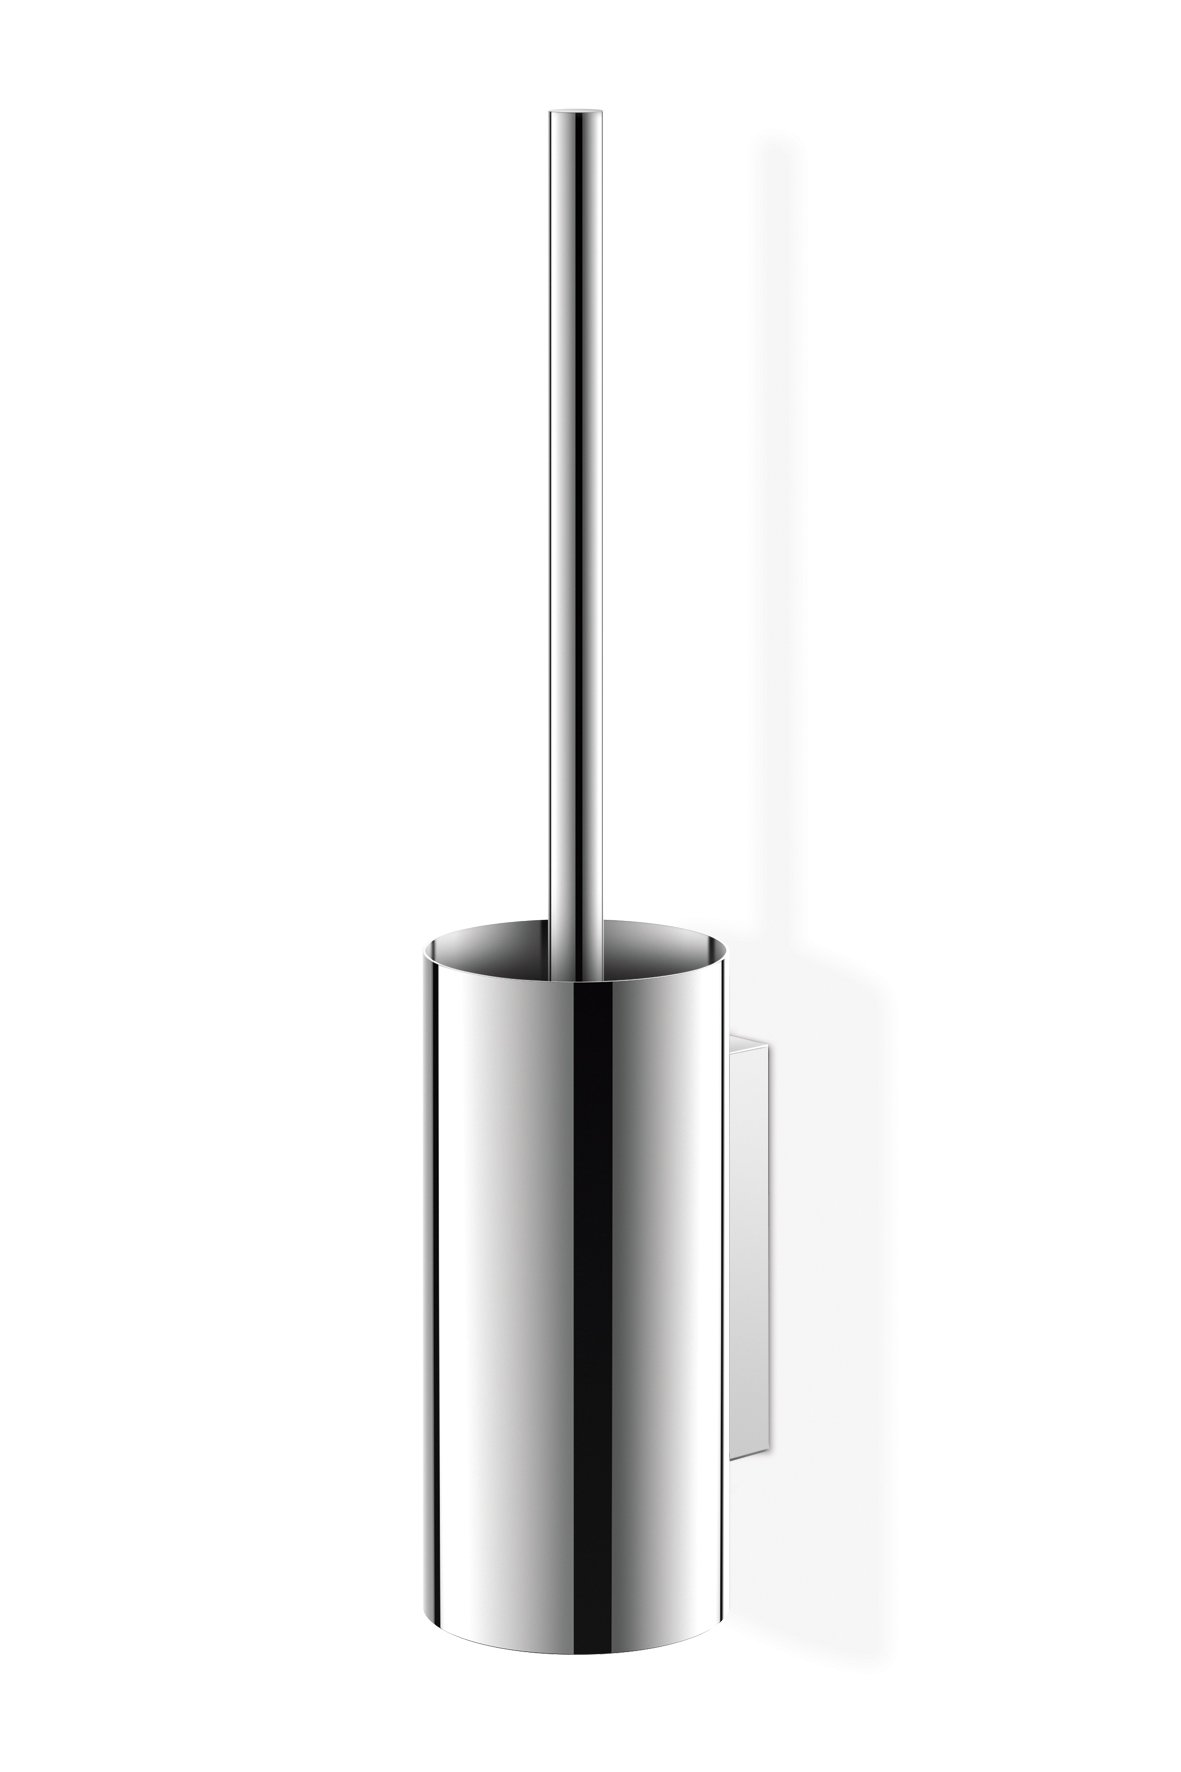 ZACK 40026 Linea Wall Mounted Toilet Brush, 17.72-Inch by 3.54-Inch, High Glossy Finish